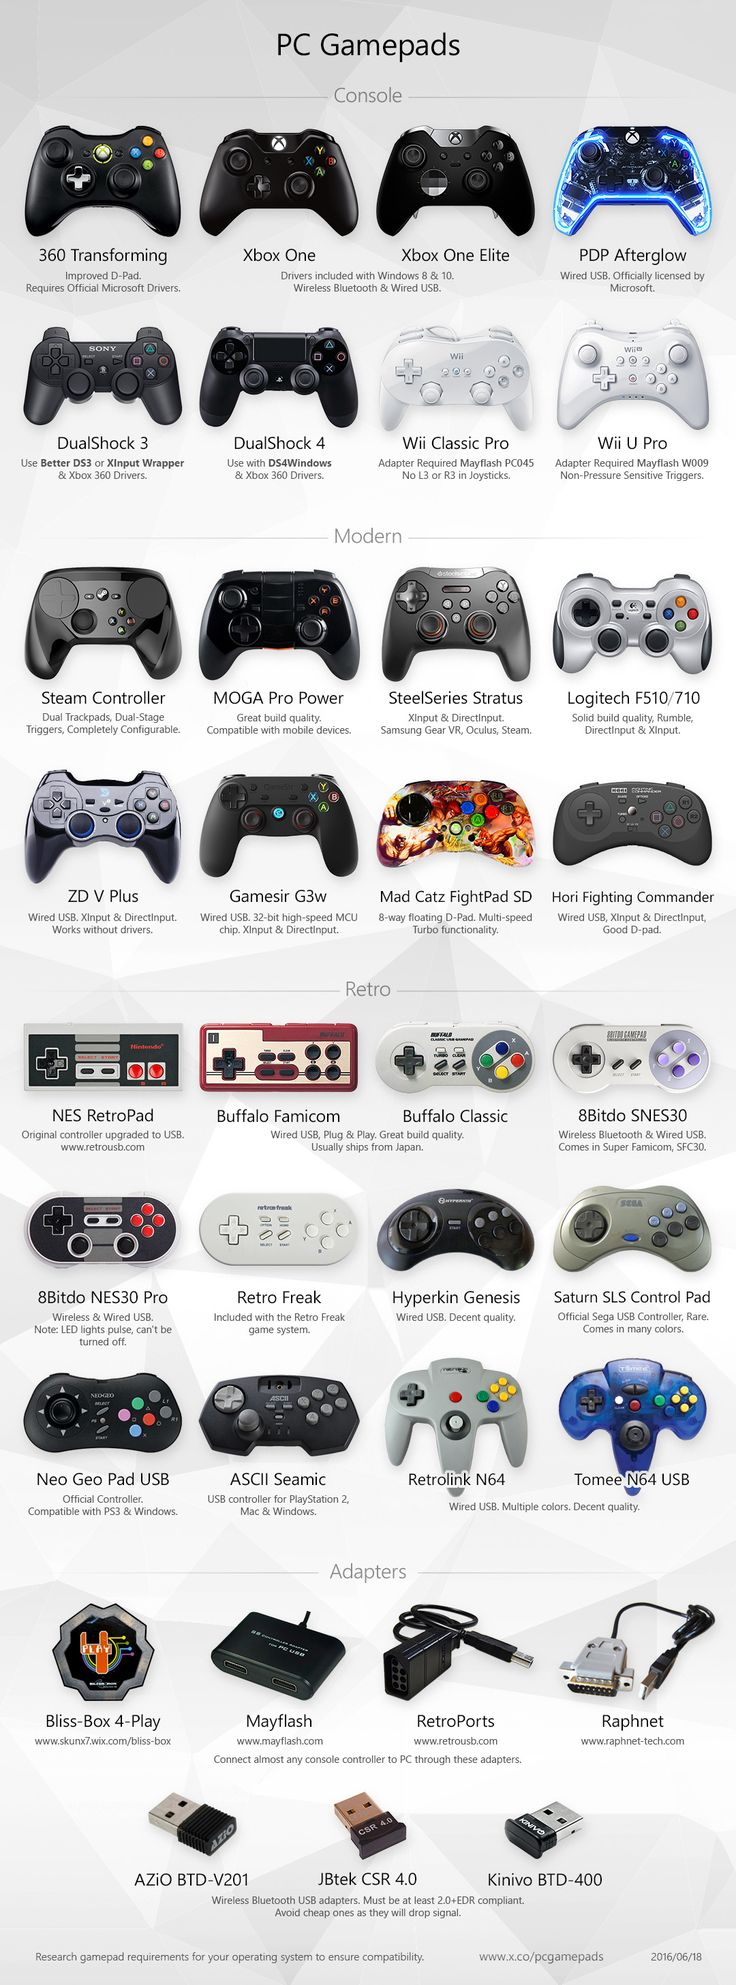 PC Gamepads Infograph